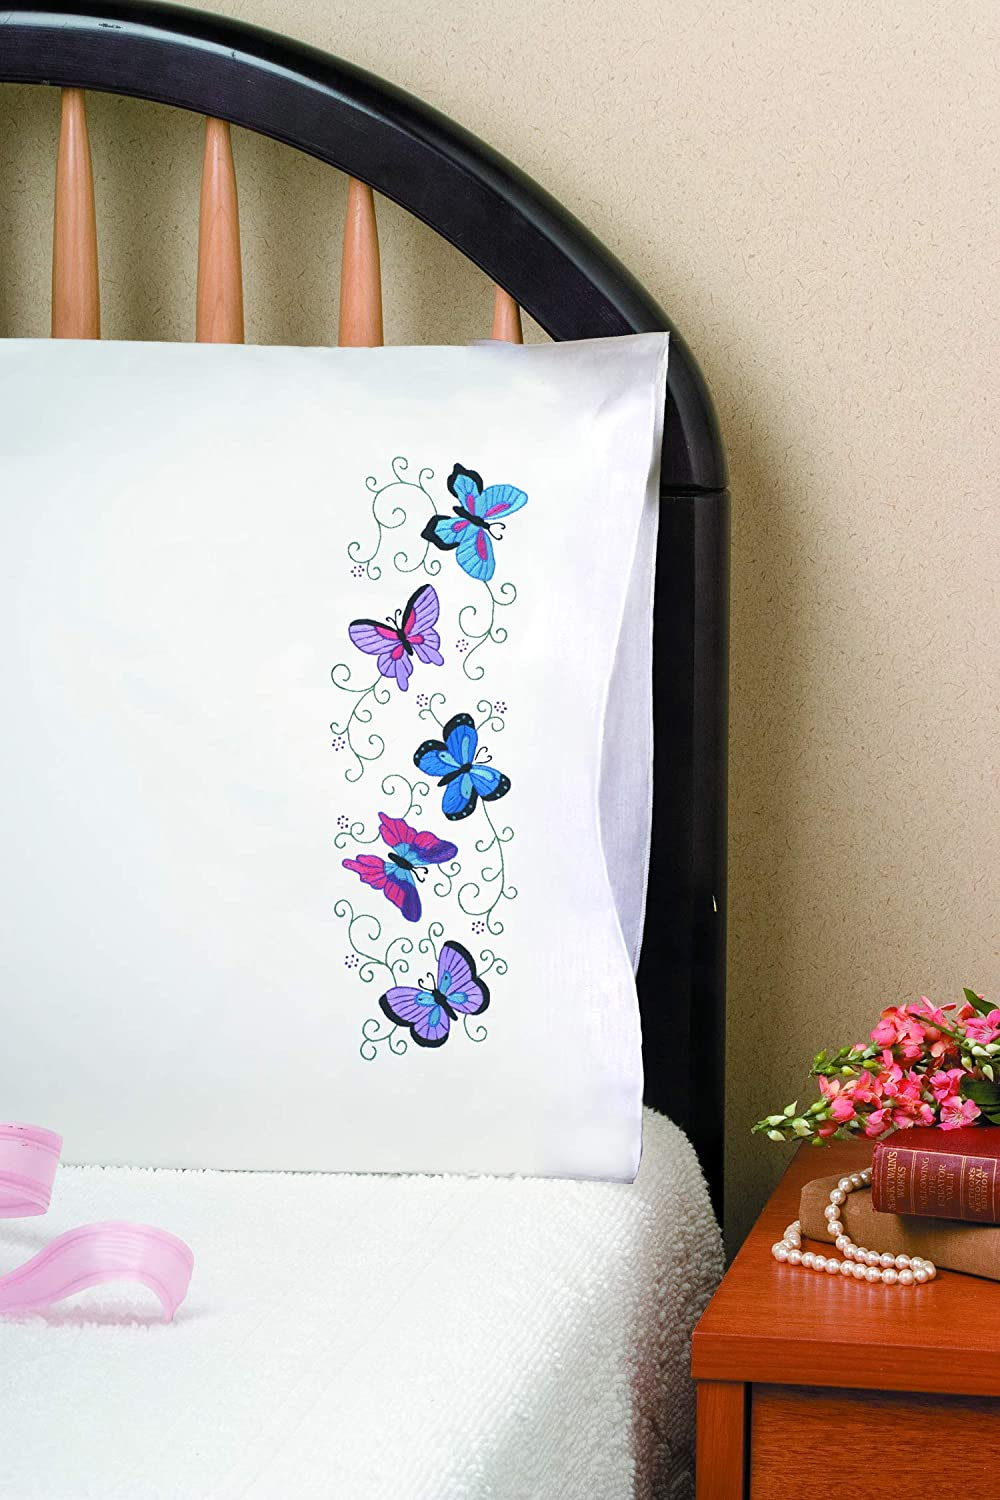 Tobin T232046 Stamped Pillowcase Pair Stamped Cross Stitch Kit For Embroidery 20 By 30 Inch Butterflies Amazon Ca Home Kitchen